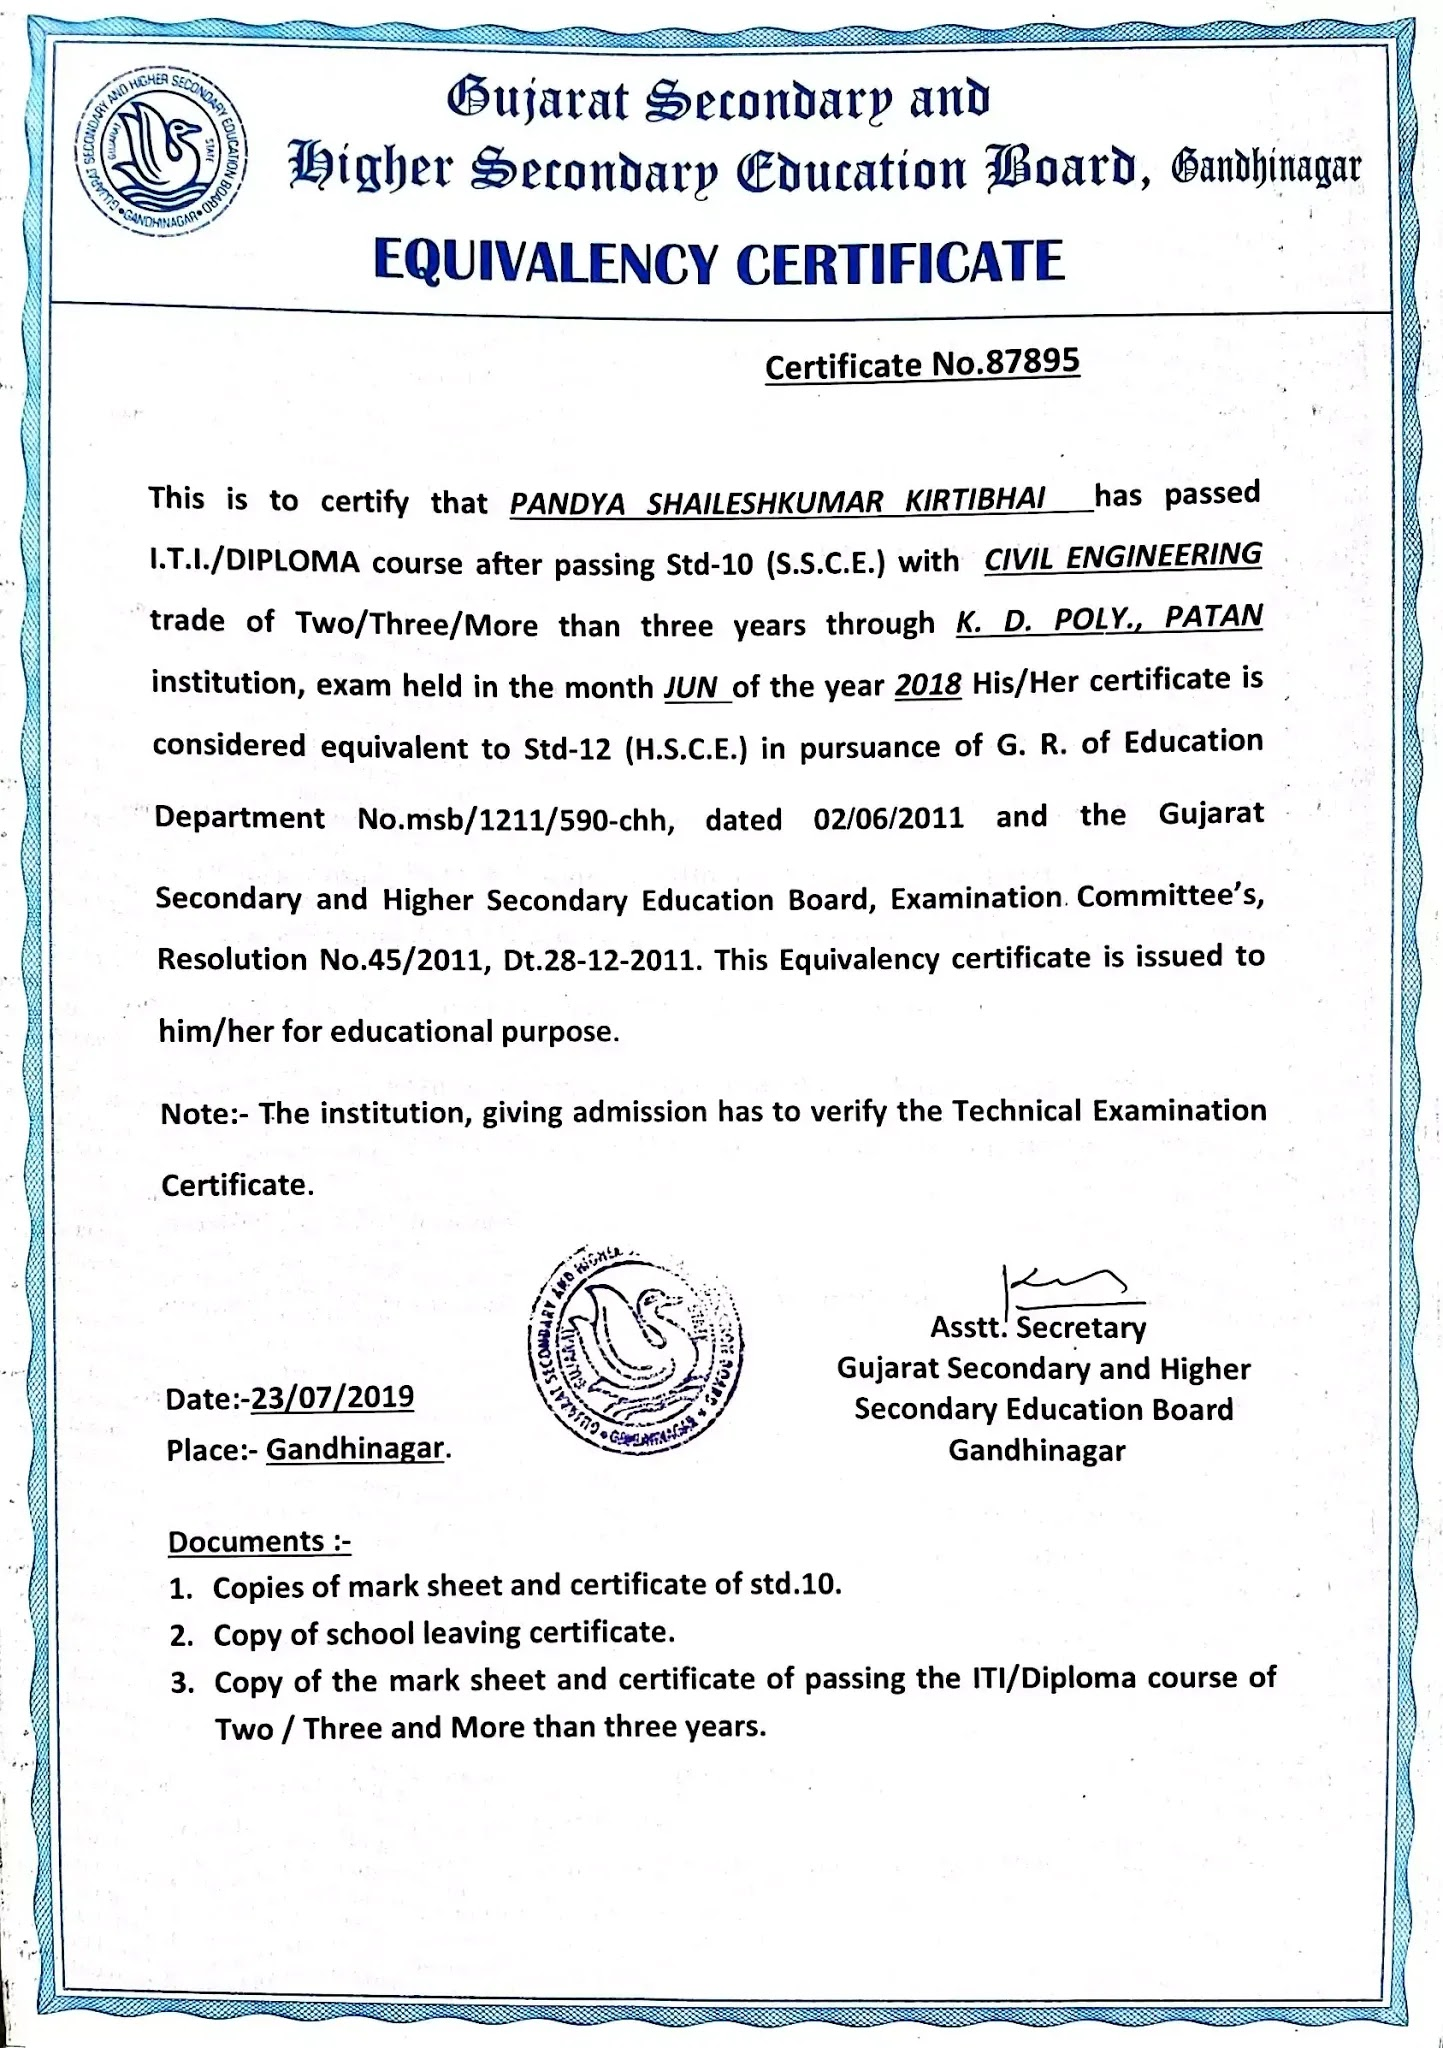 How to get 12th HSC Equivalent Certificate after Diploma/ITI